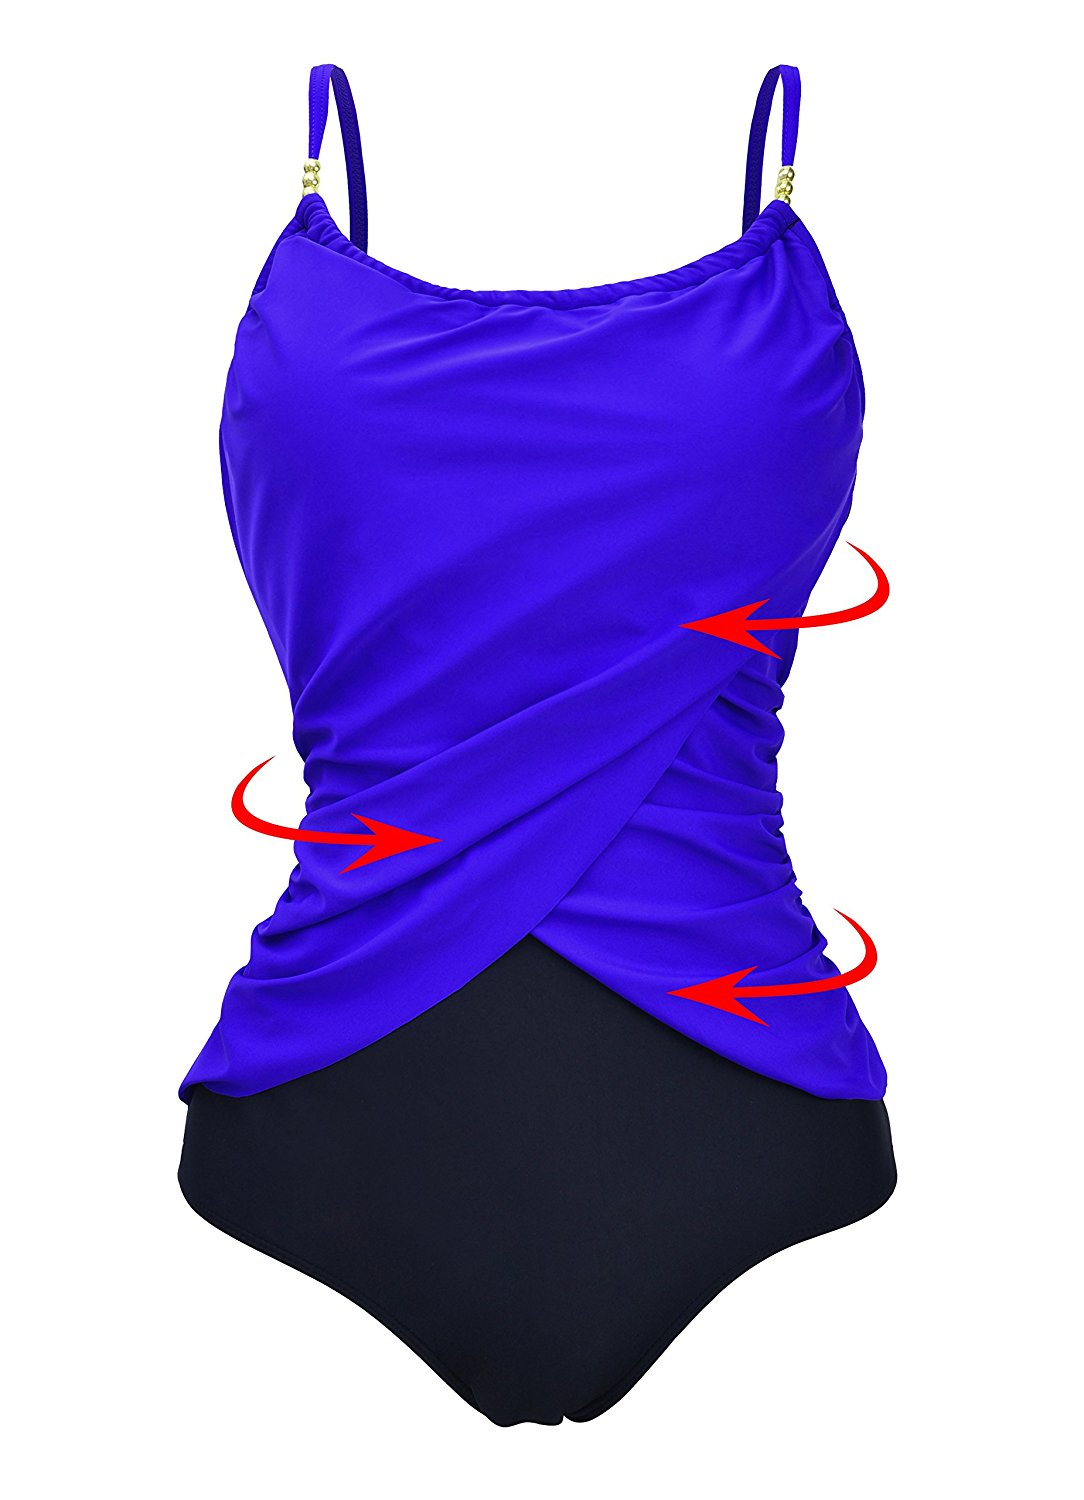 5d19ef3ad62 Get Quotations · Zando Womens Vintage Frilly One Piece Swimsuit Tummy  Control Swimwear Swimsuits Color Splicing Plus Size Bathing